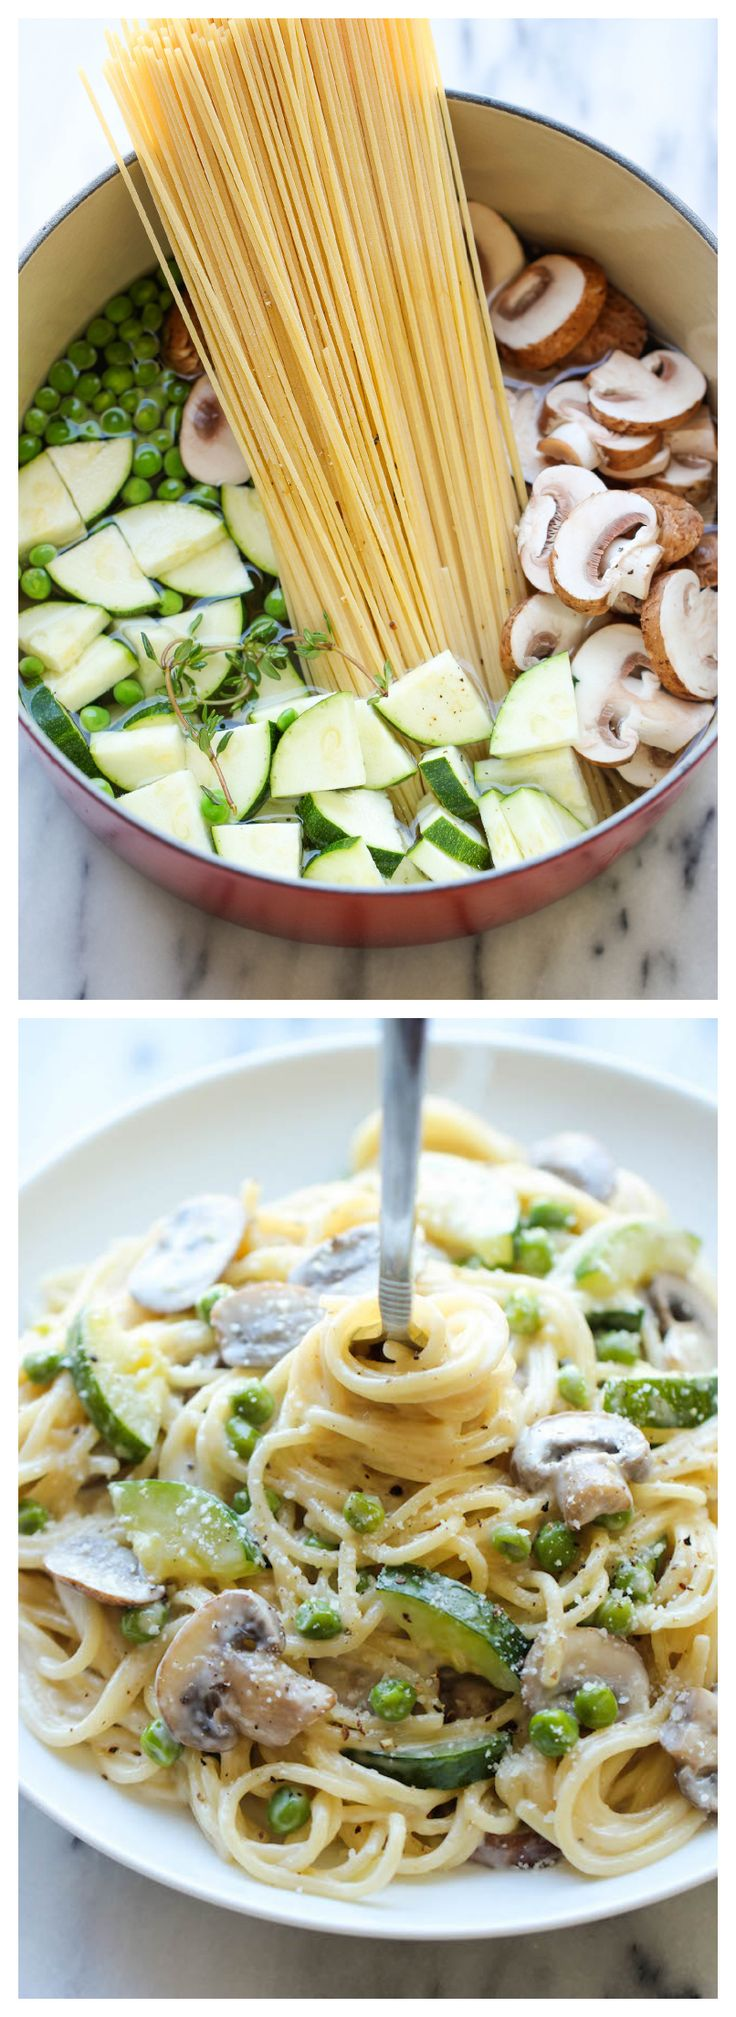 One Pot Zucchini Mushroom Pasta - from Damn Delicious